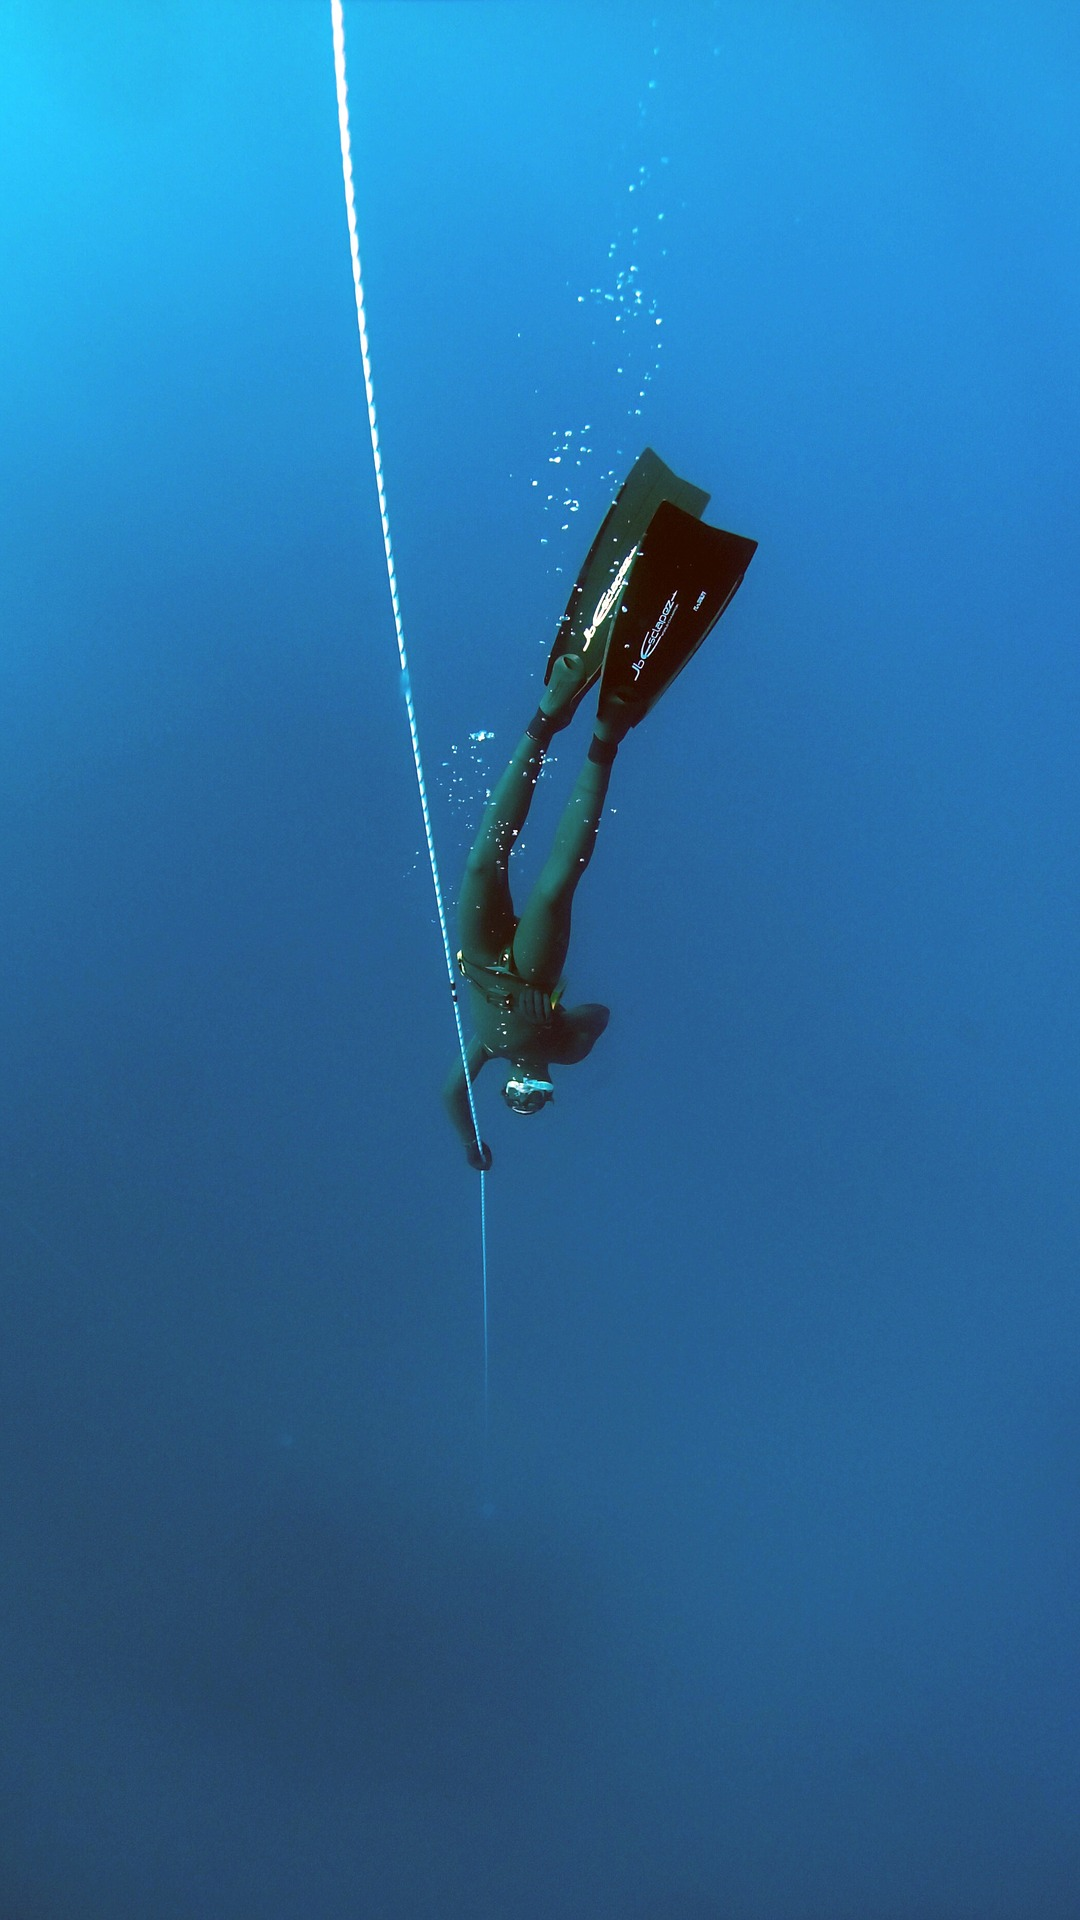 freediving-1383104_1920.jpg